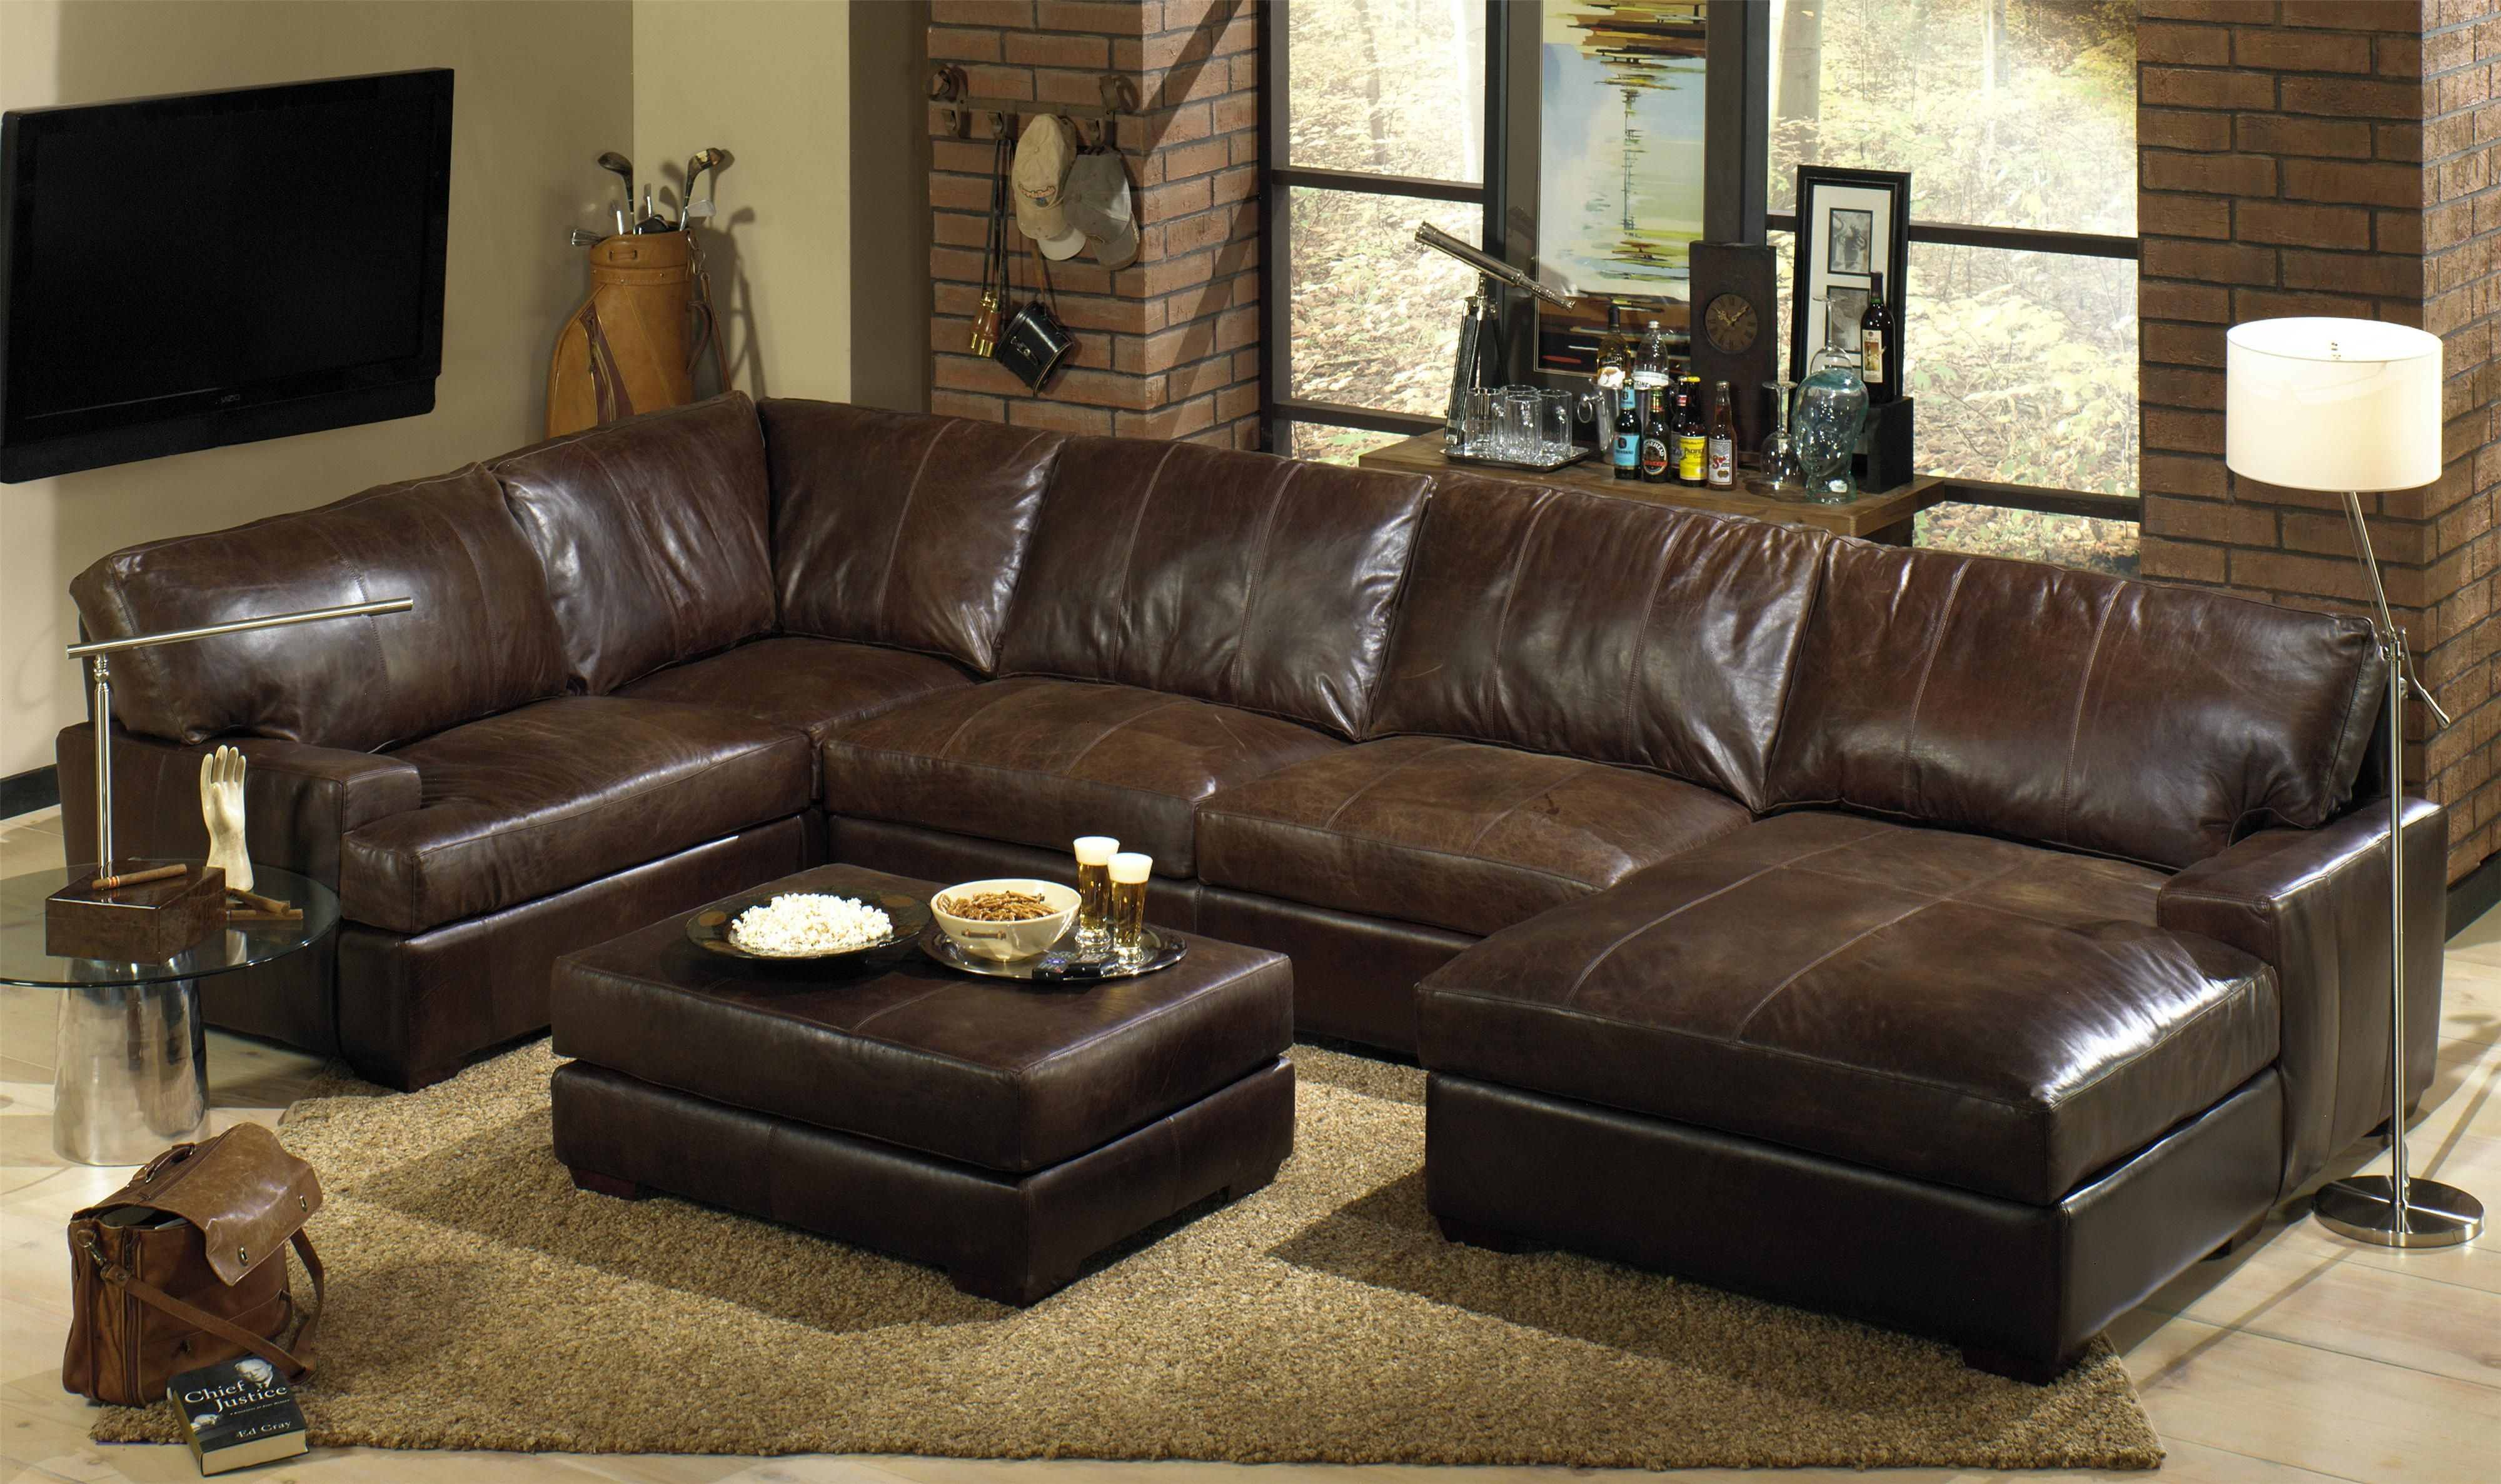 Oversized Leather Sectional Sofa With Chaise Sectional Sofa With Chaise Leather Living Room Furniture Leather Couch Sectional